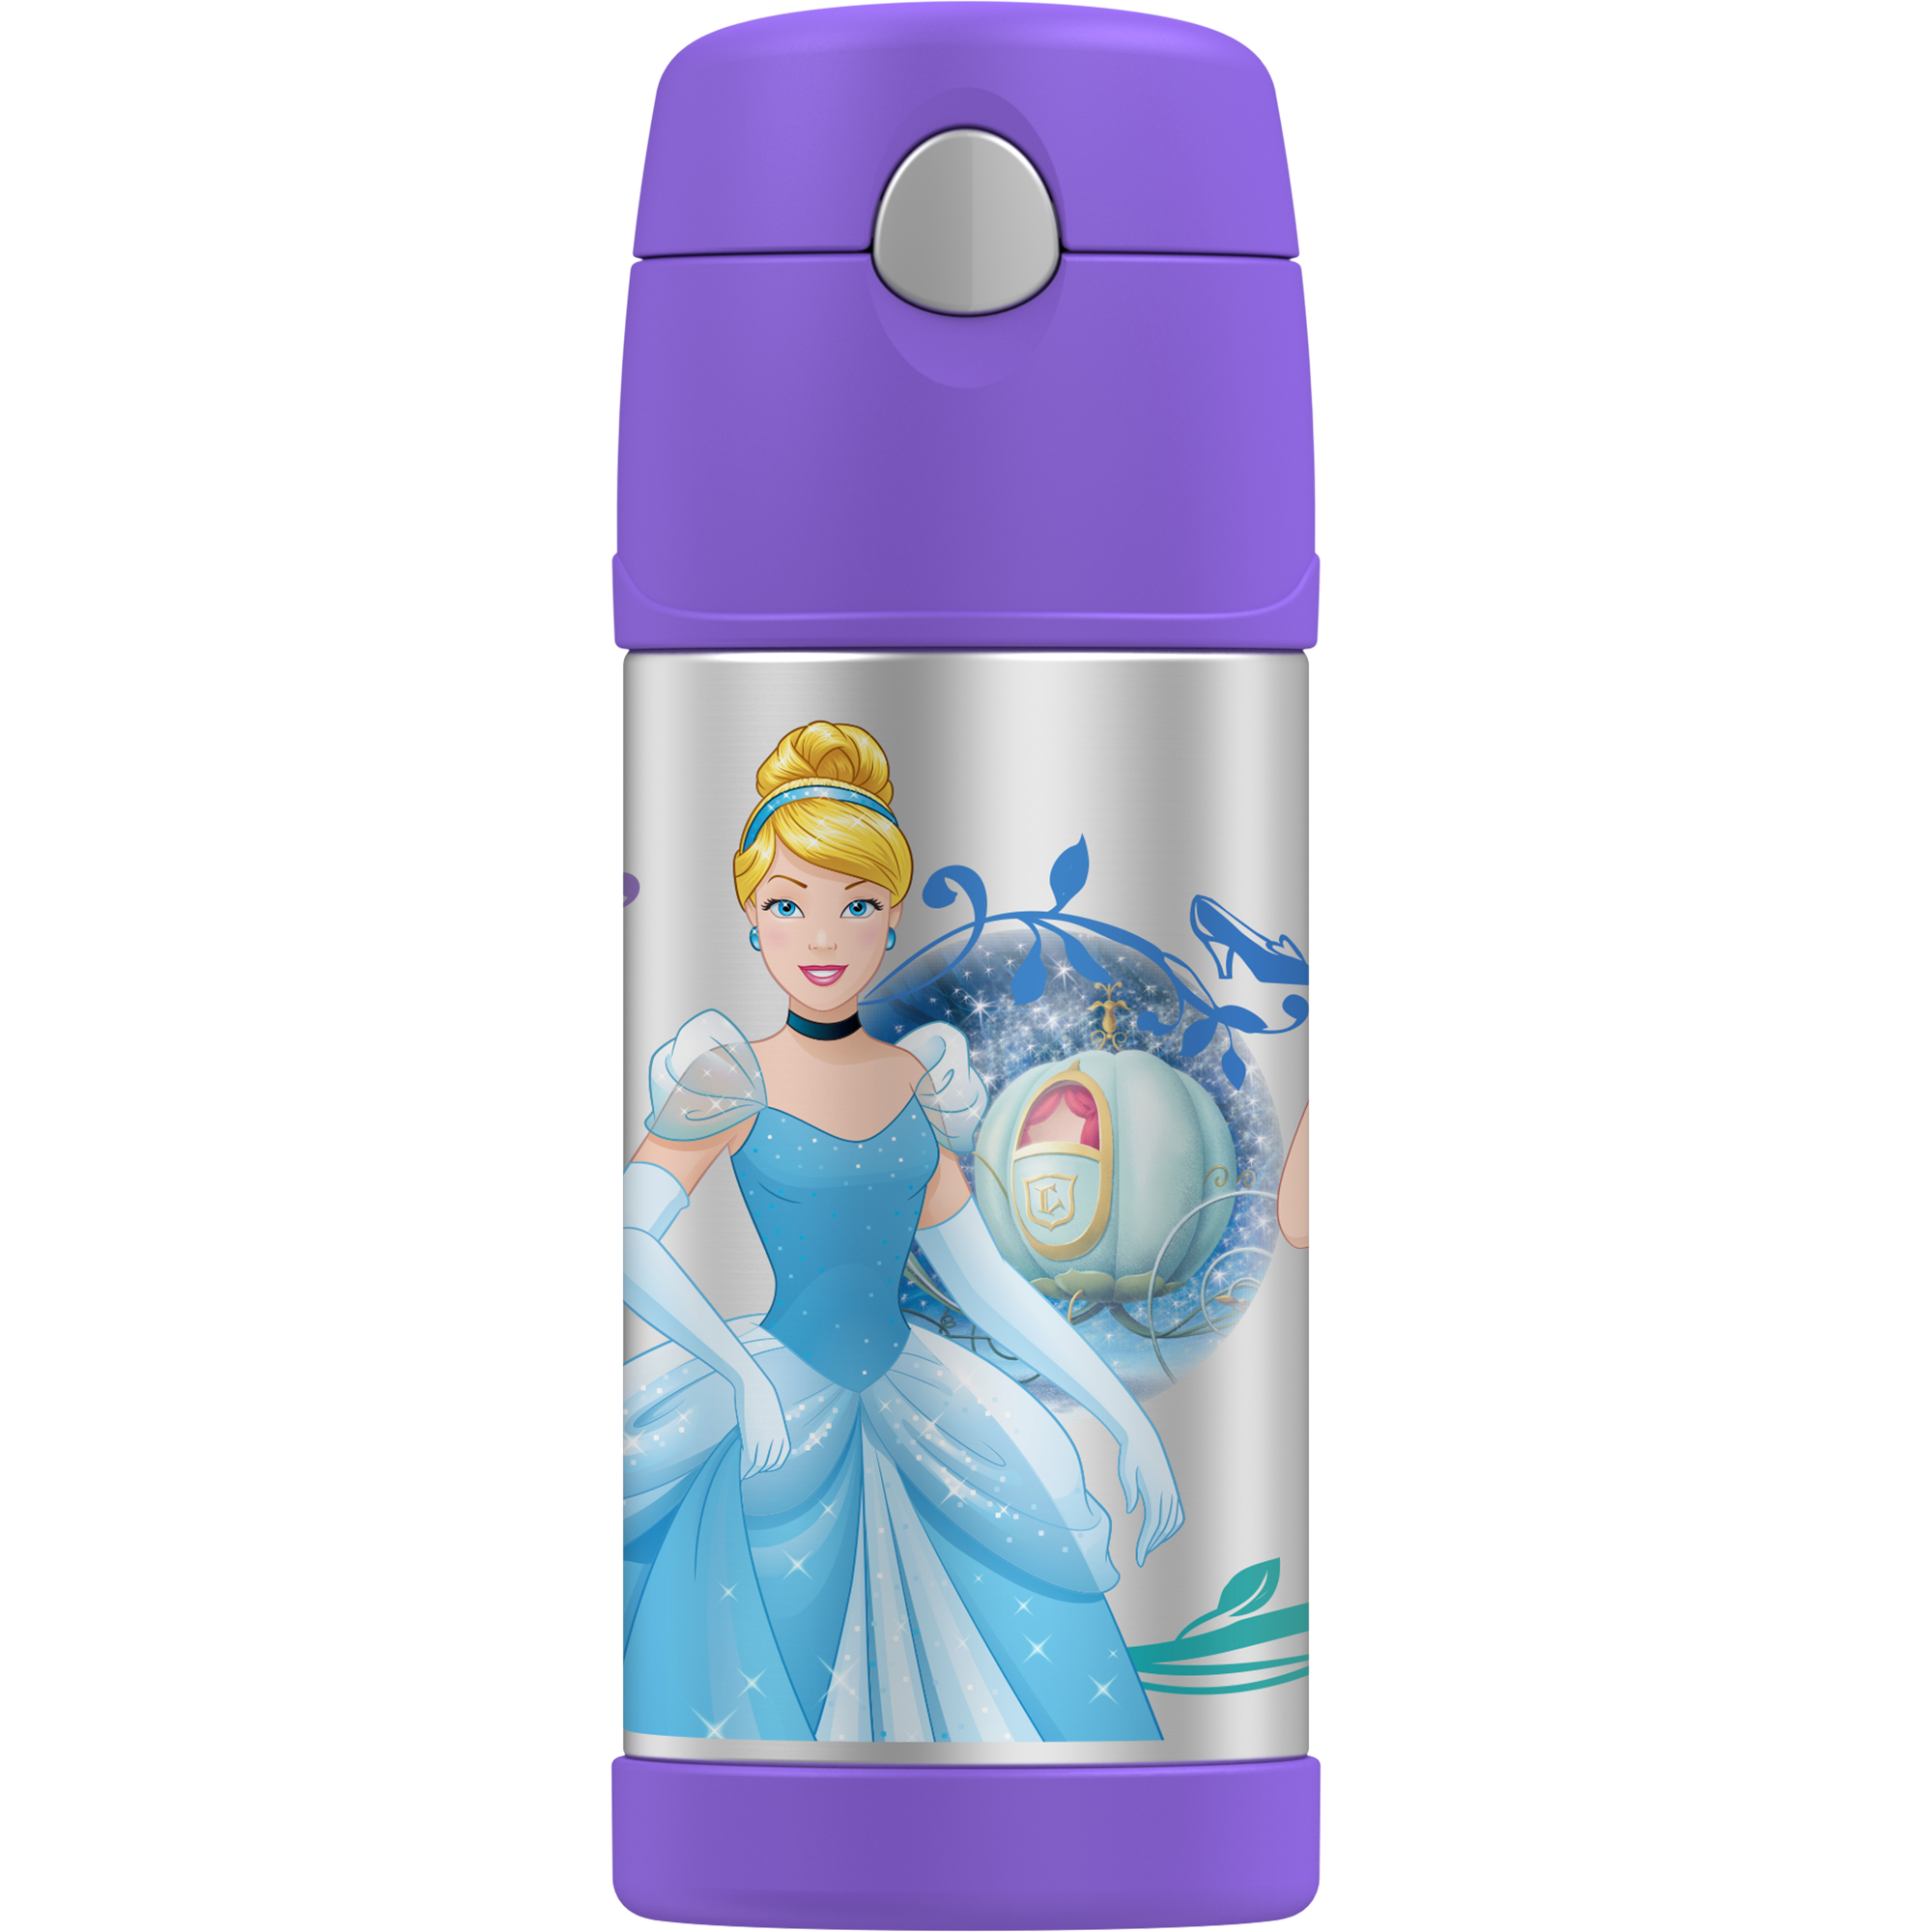 GENUINE THERMOS BRAND FUNTAINER Vacuum Insulated Straw Bottle, 12-Ounce, Disney Princess